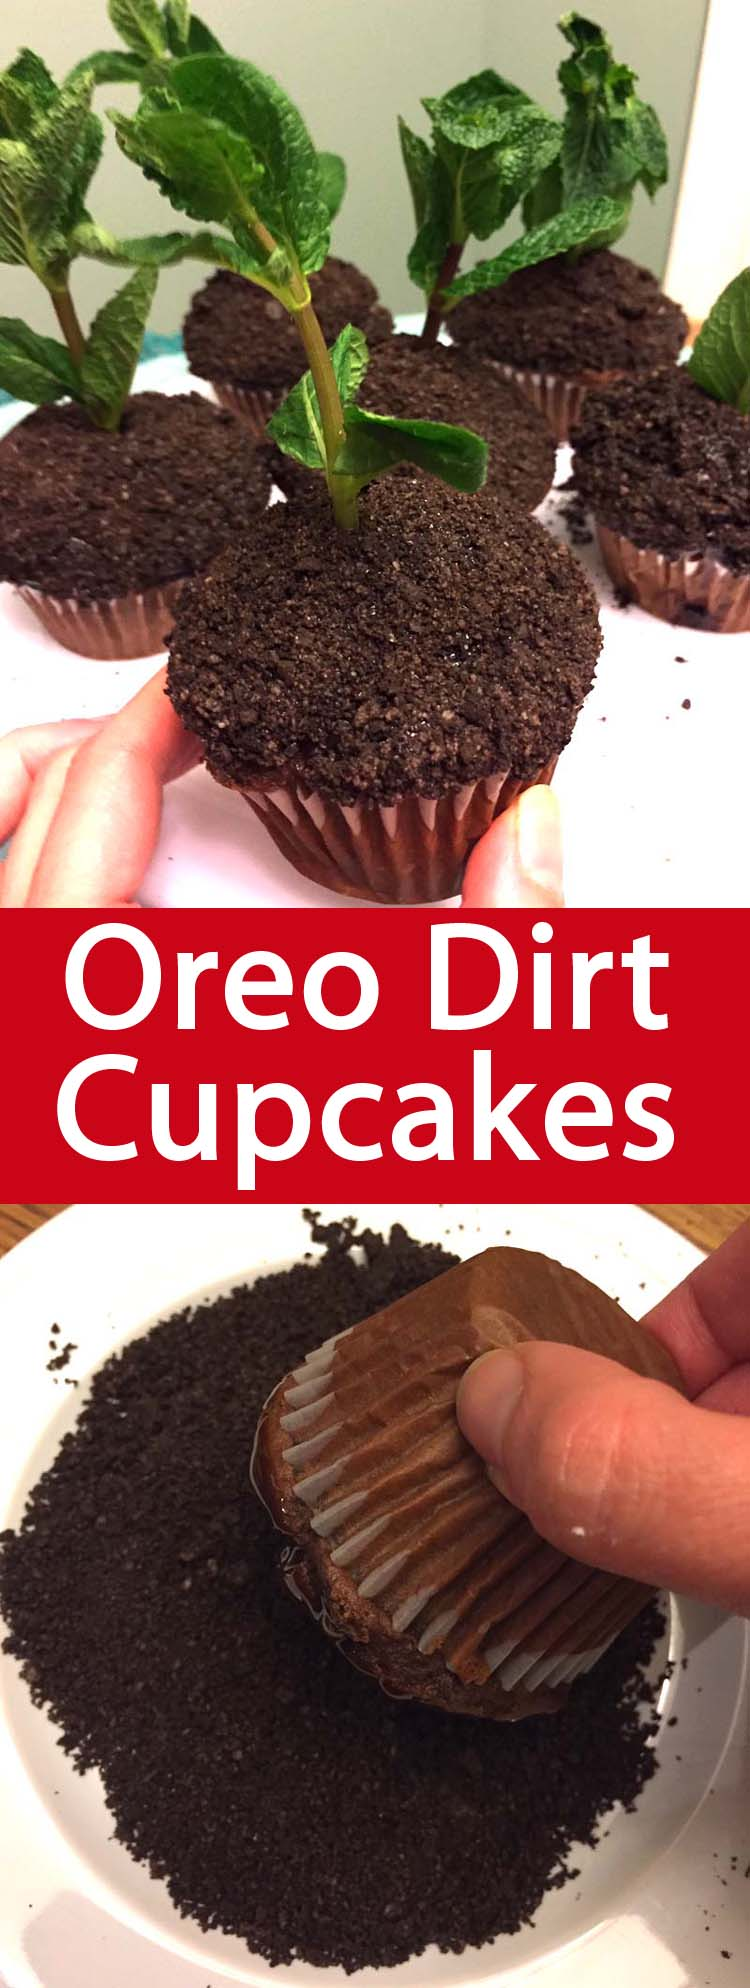 These dirt cupcakes are amazing! Oreo crumbs make perfect \